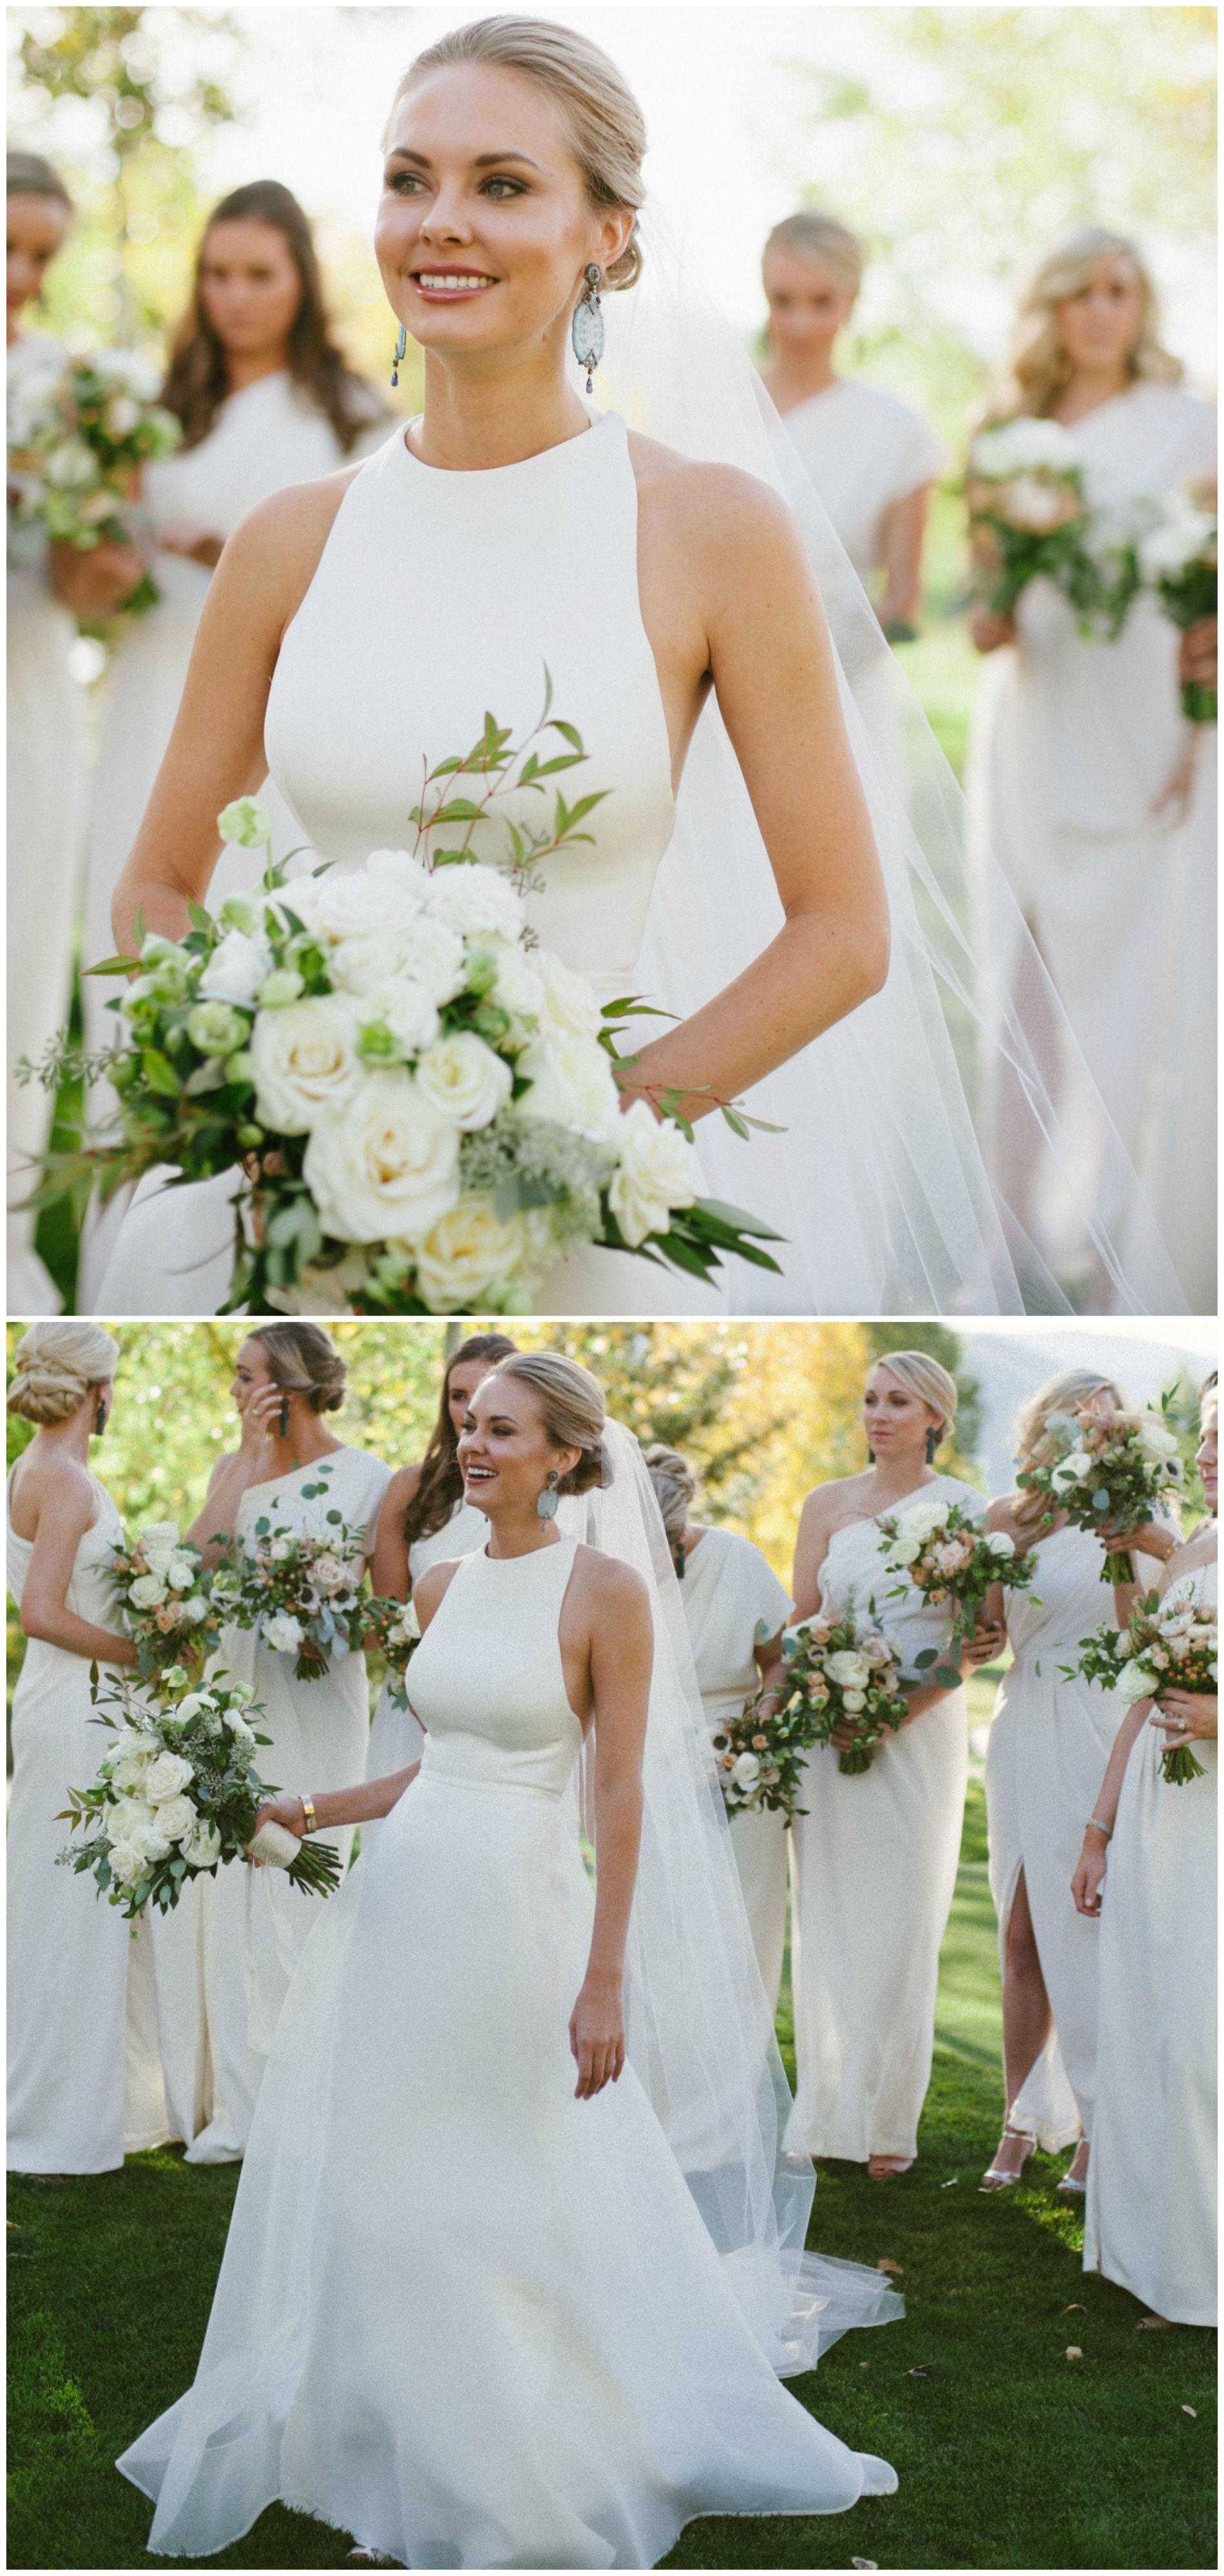 Simple white wedding dresses  The Smarter Way to Wed  White satin dress Satin dresses and White